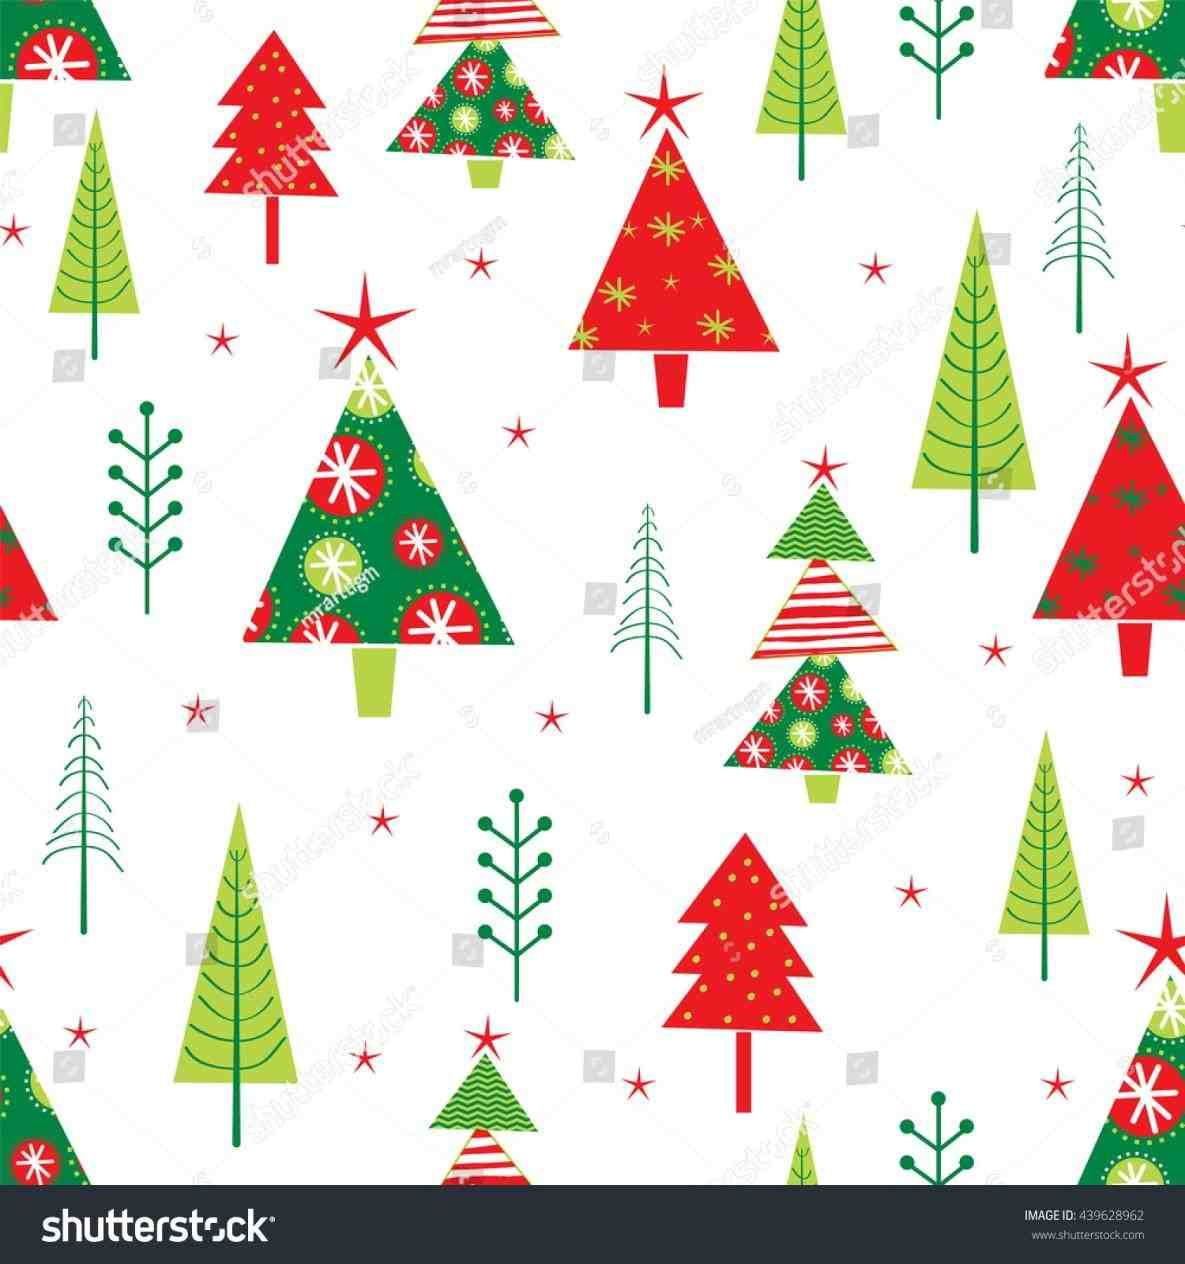 Xmast Site Christmas Background Xmas Live Wallpaper Outdoor Holiday Decor